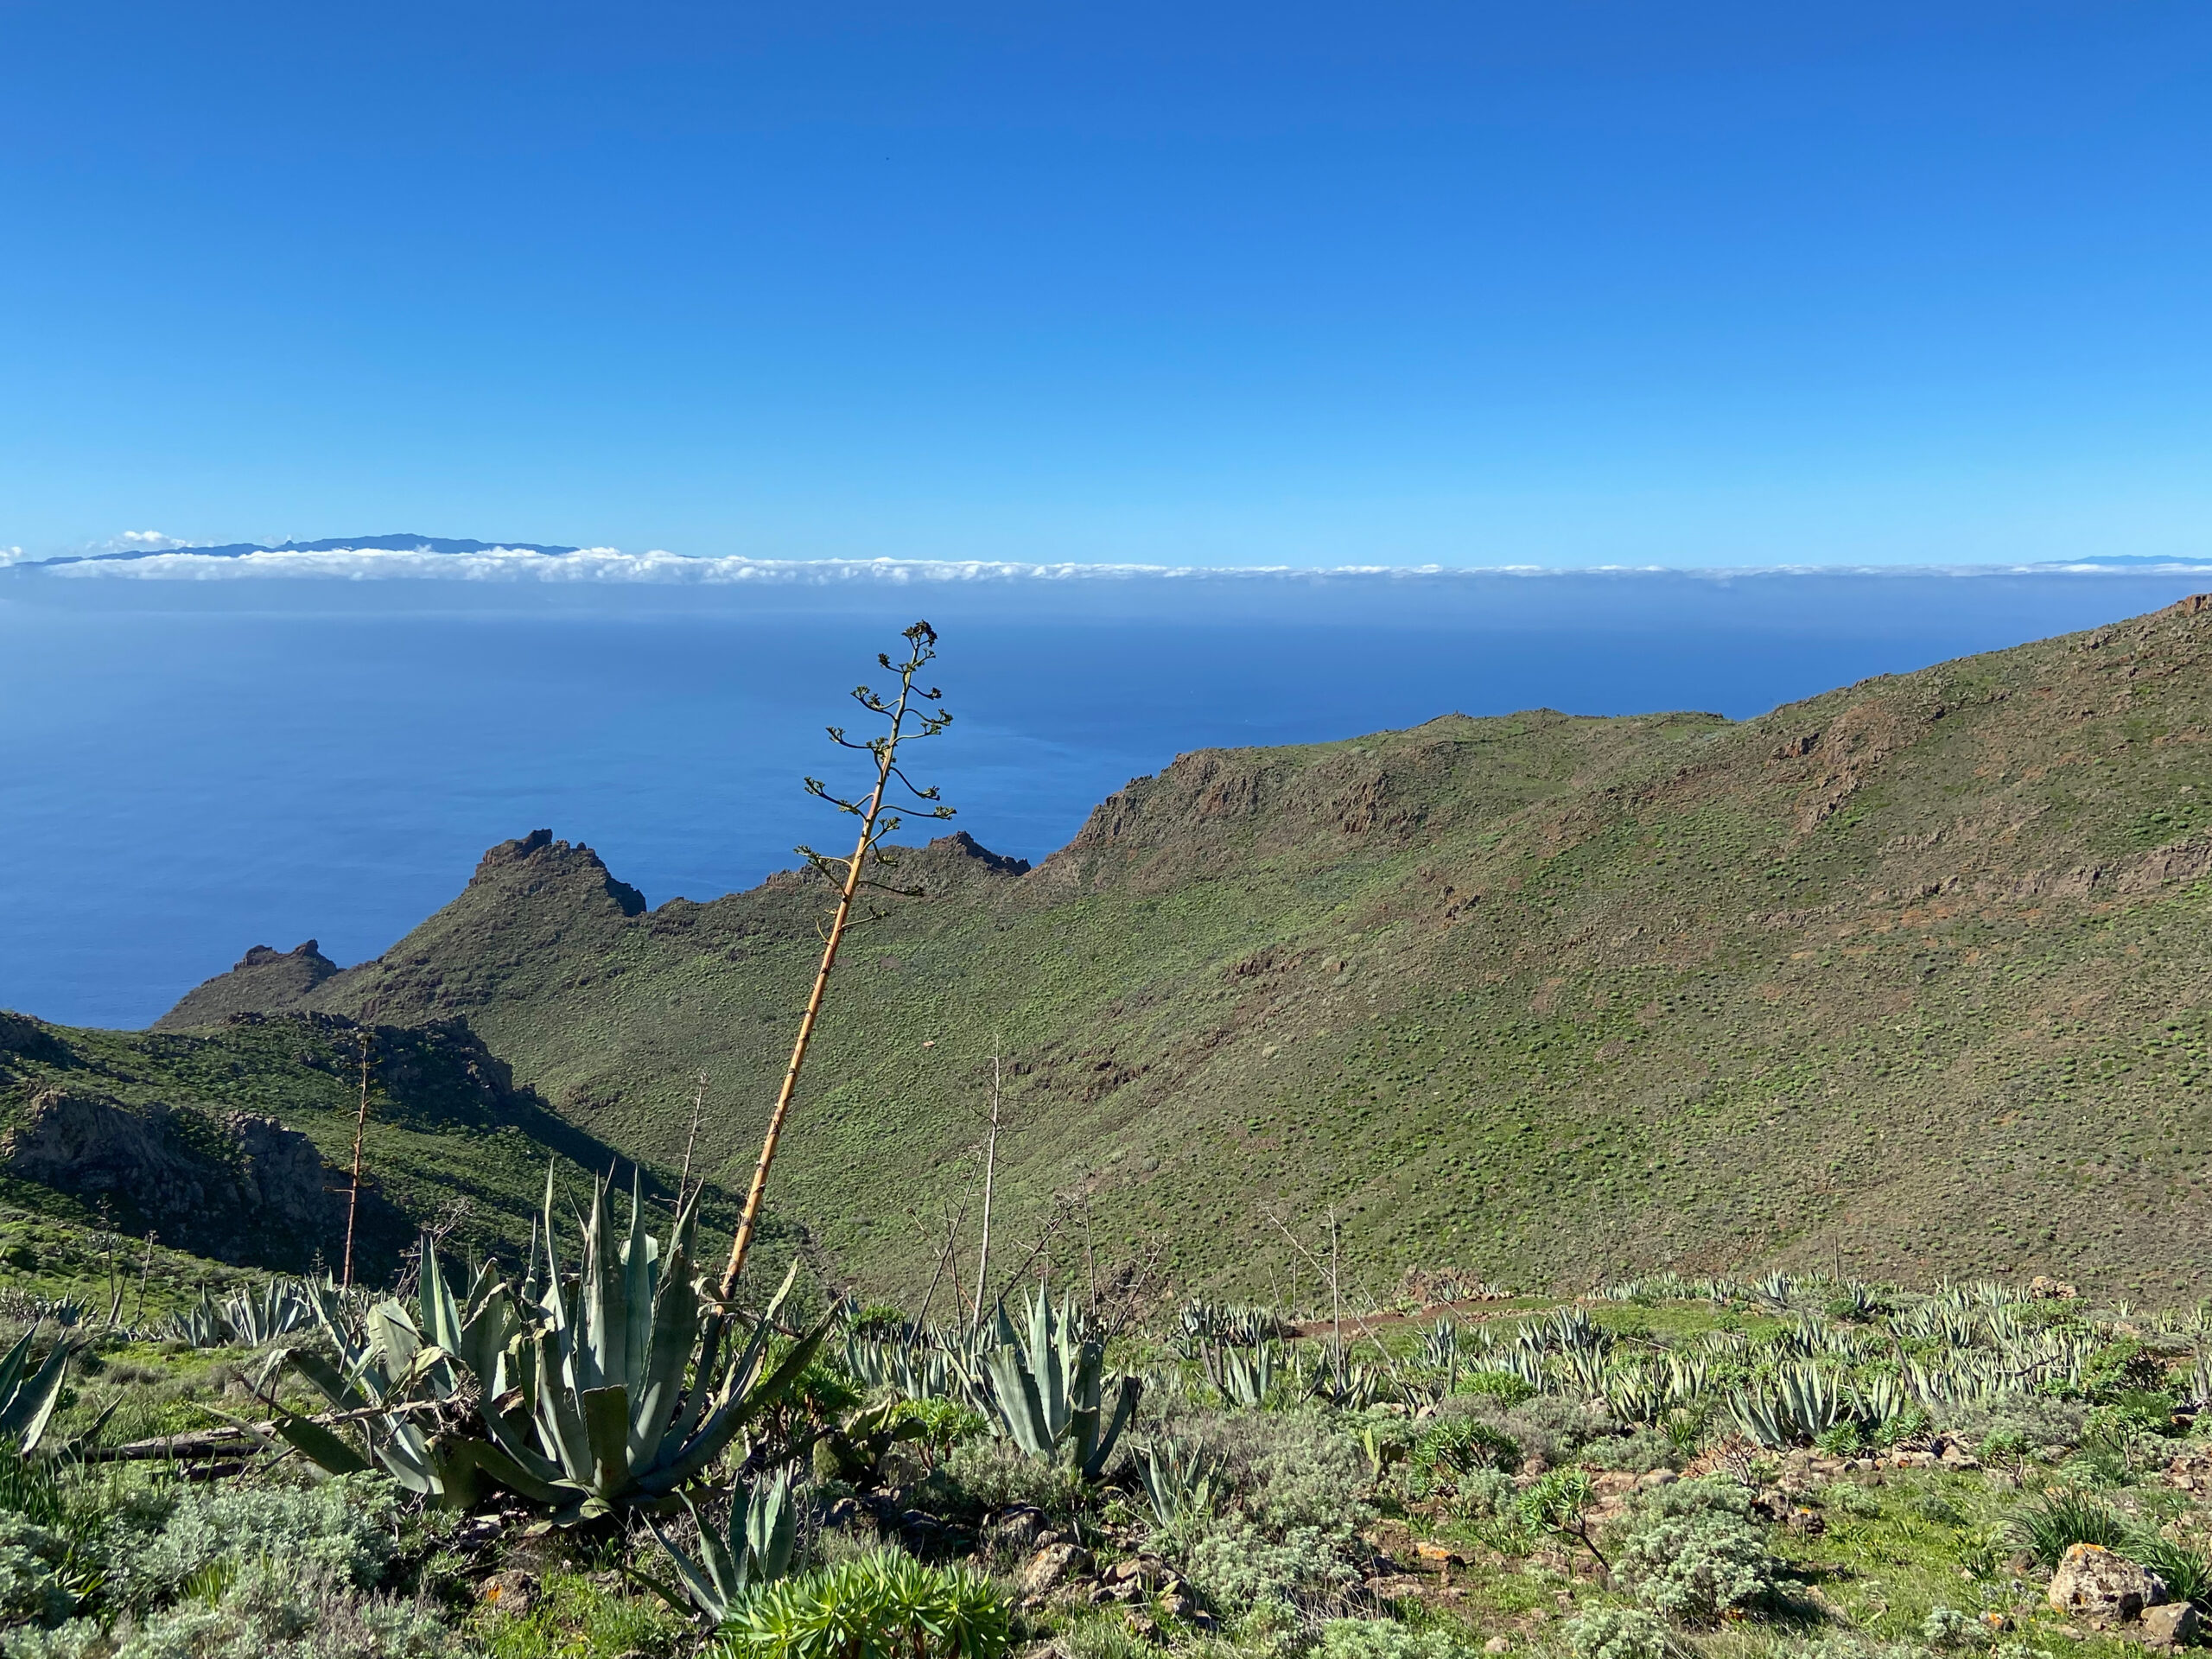 View from the heights of La Gomera and La Palma